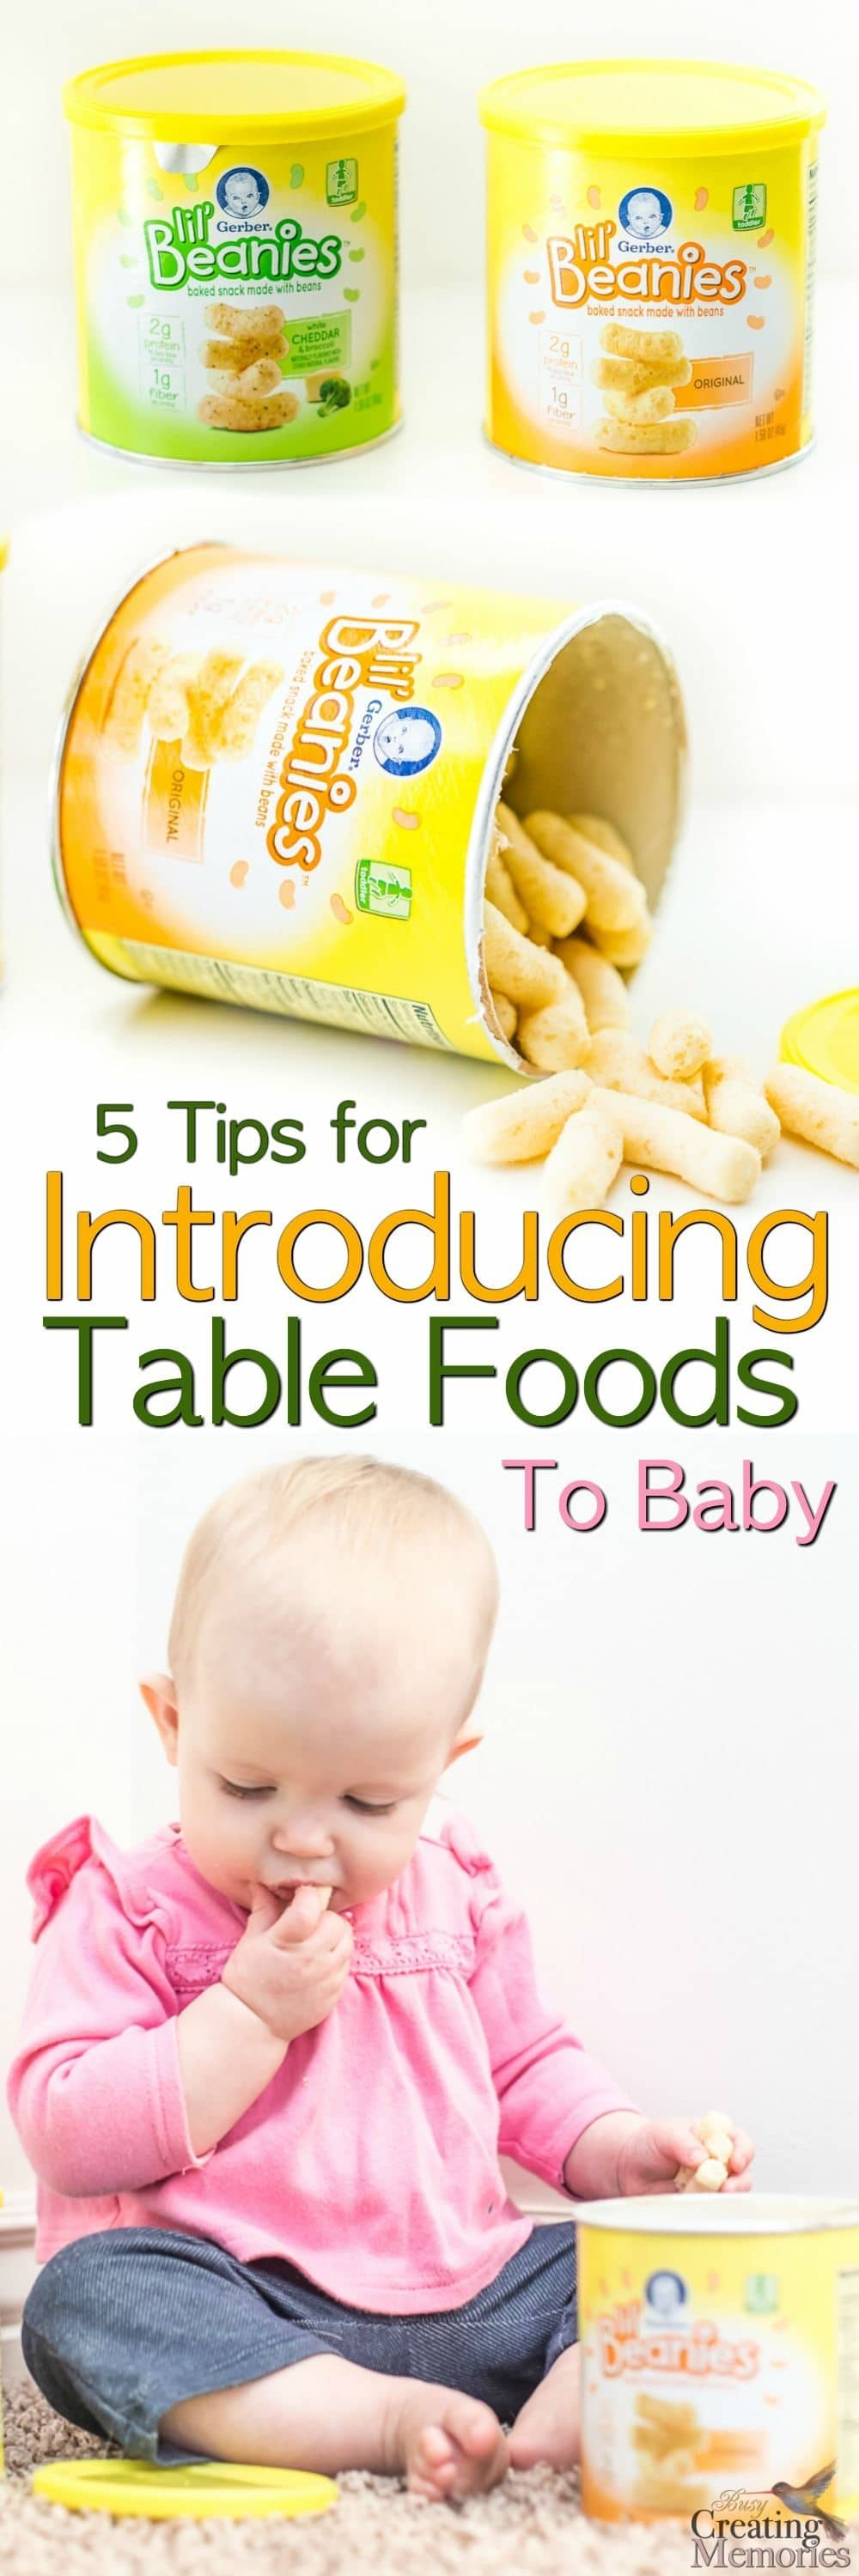 top 5 tips for introducing table foods to baby easily